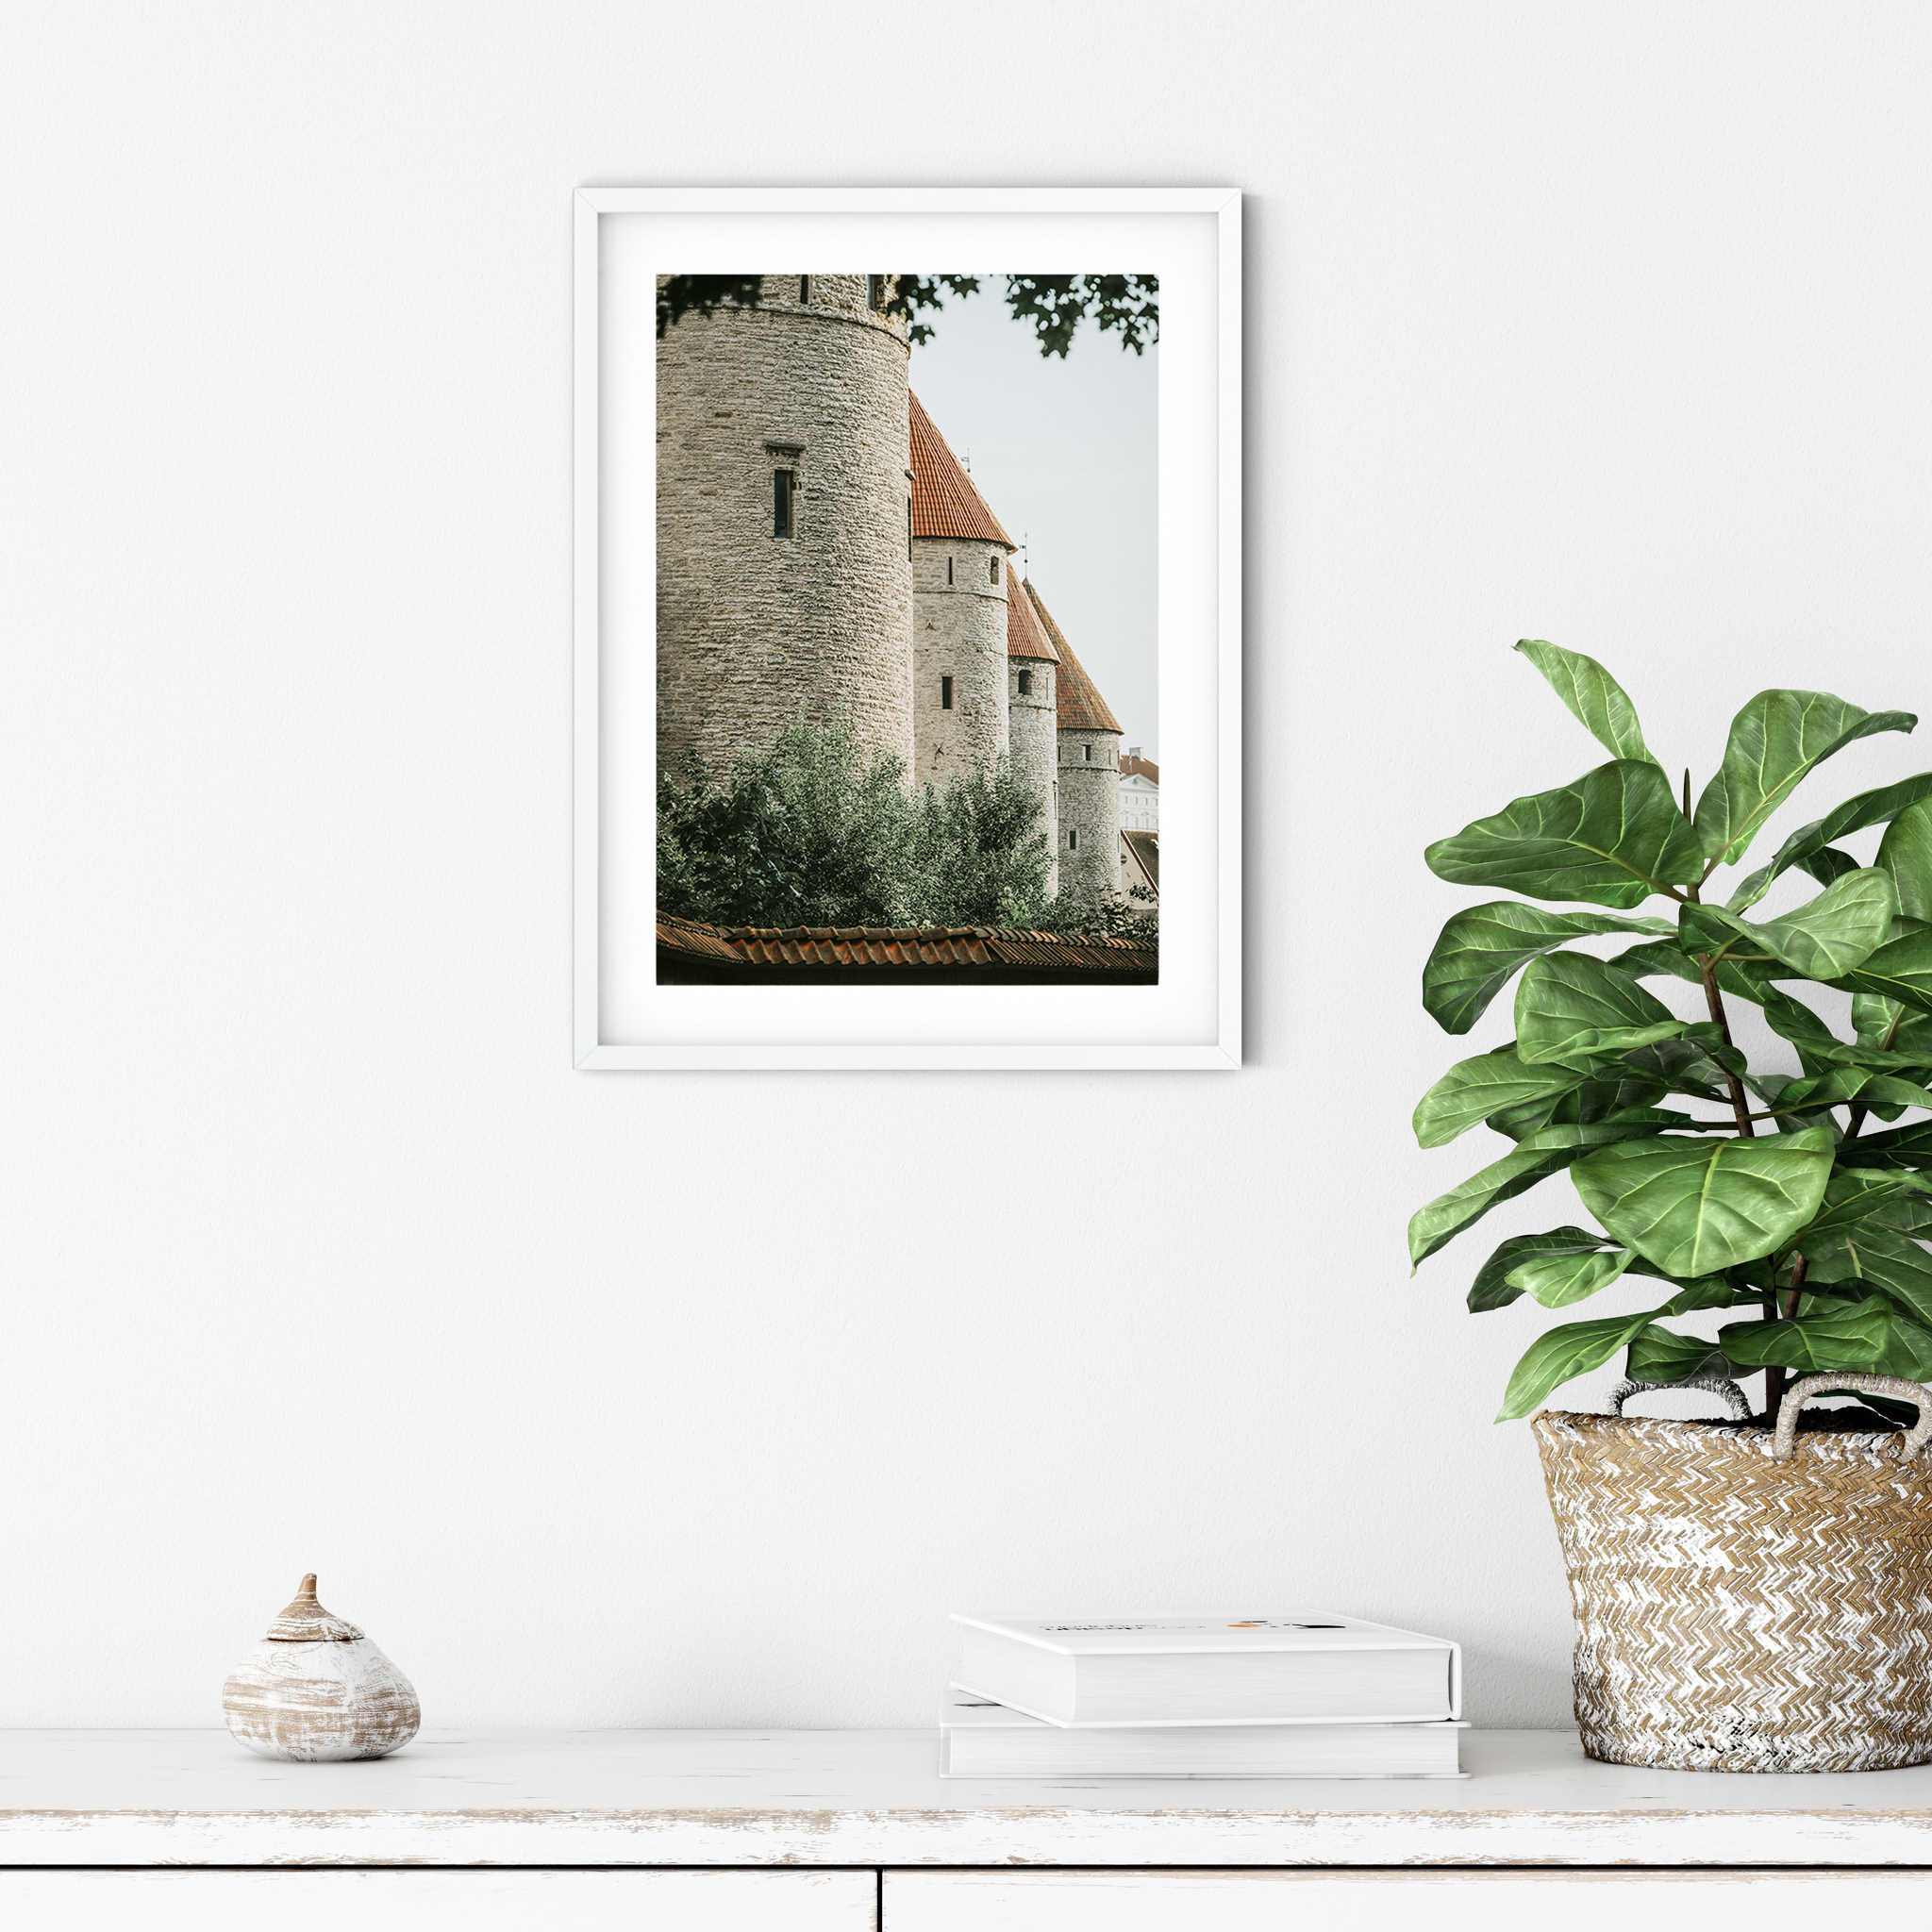 Four Towers - color photography print with border in white frame on the wall